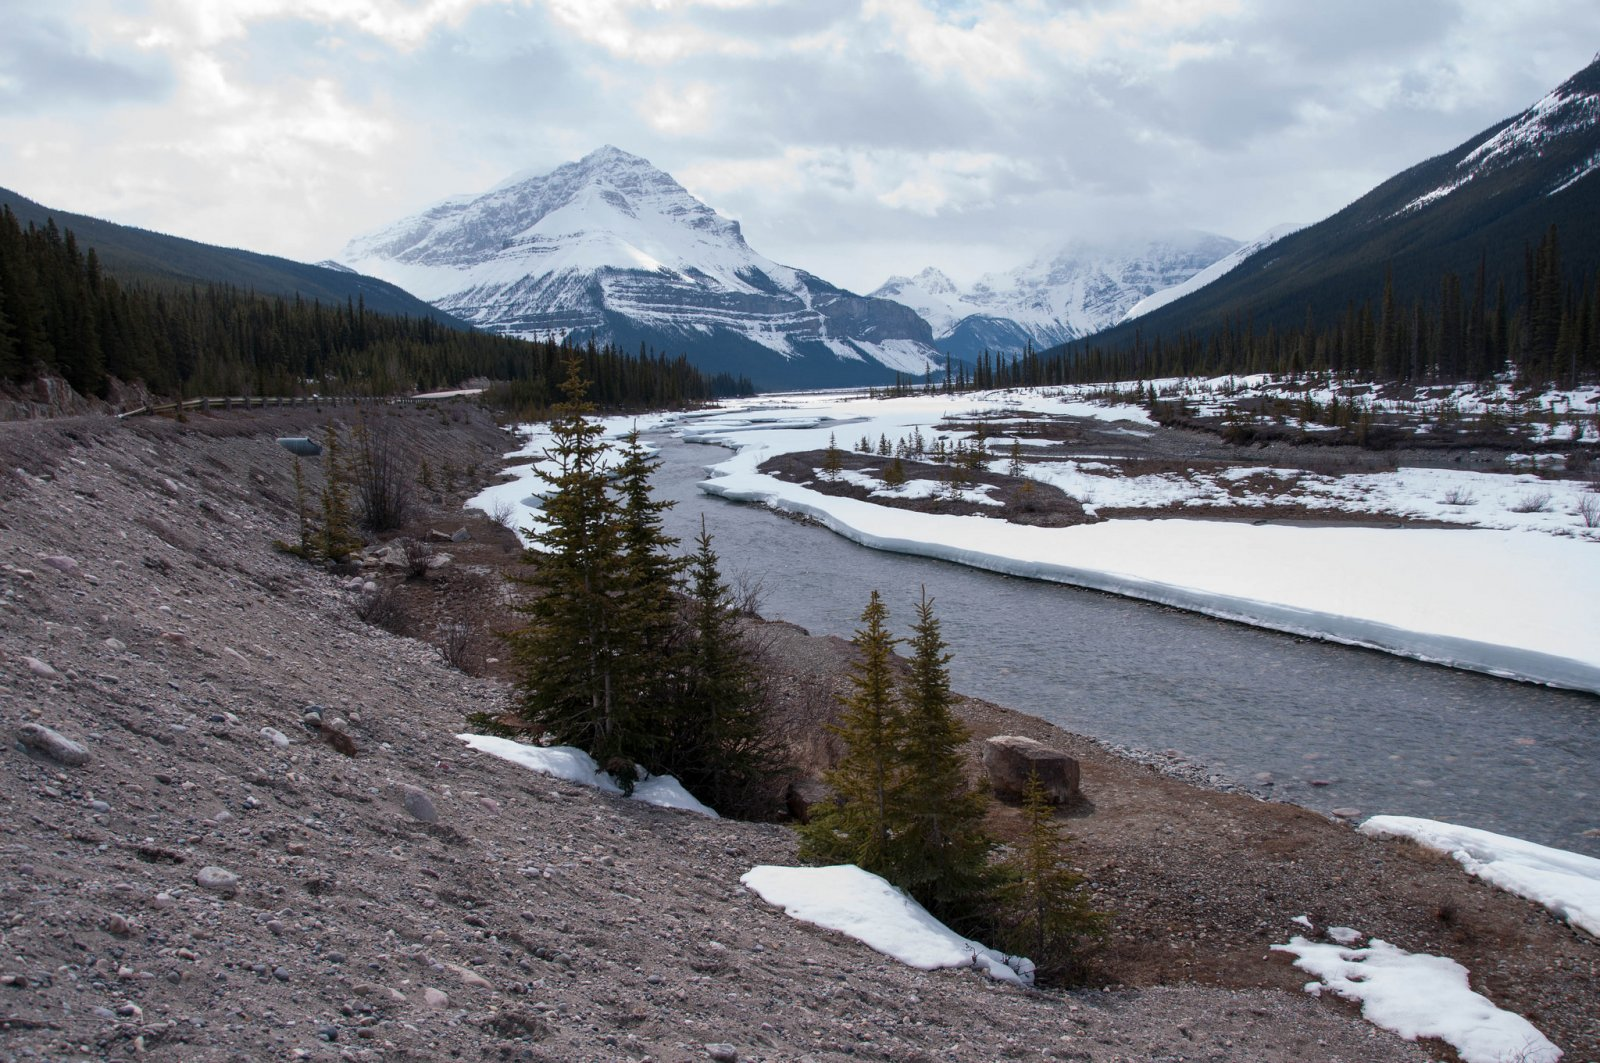 The upper reaches of the Athabasca River in Jasper National Park.